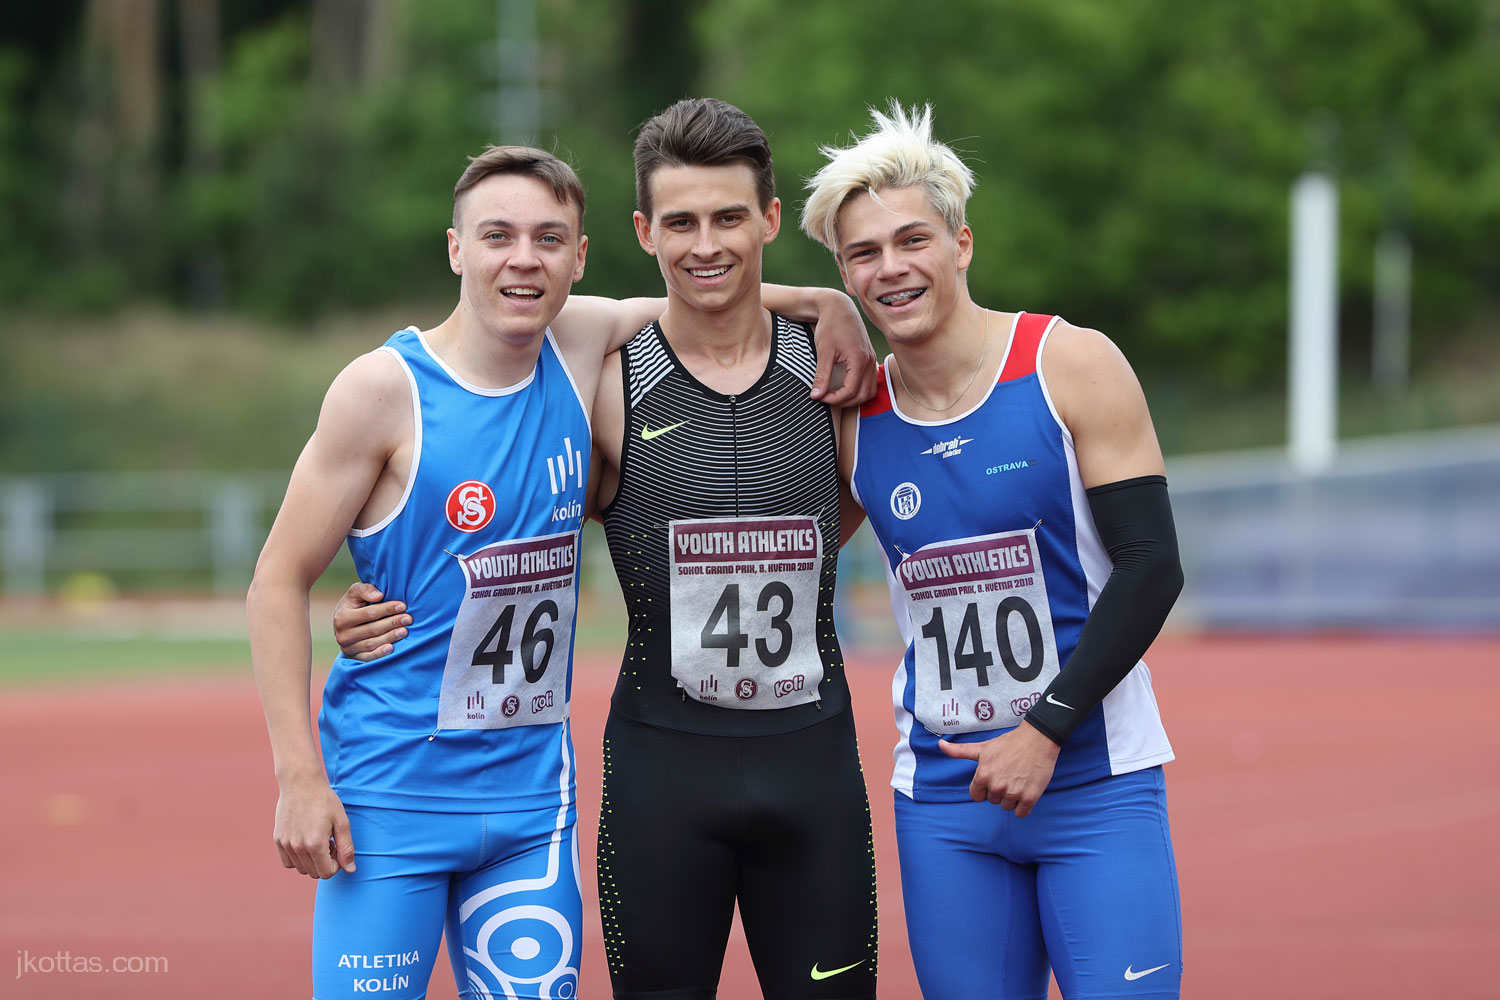 2018_05_08 Youth Athletics Kolin